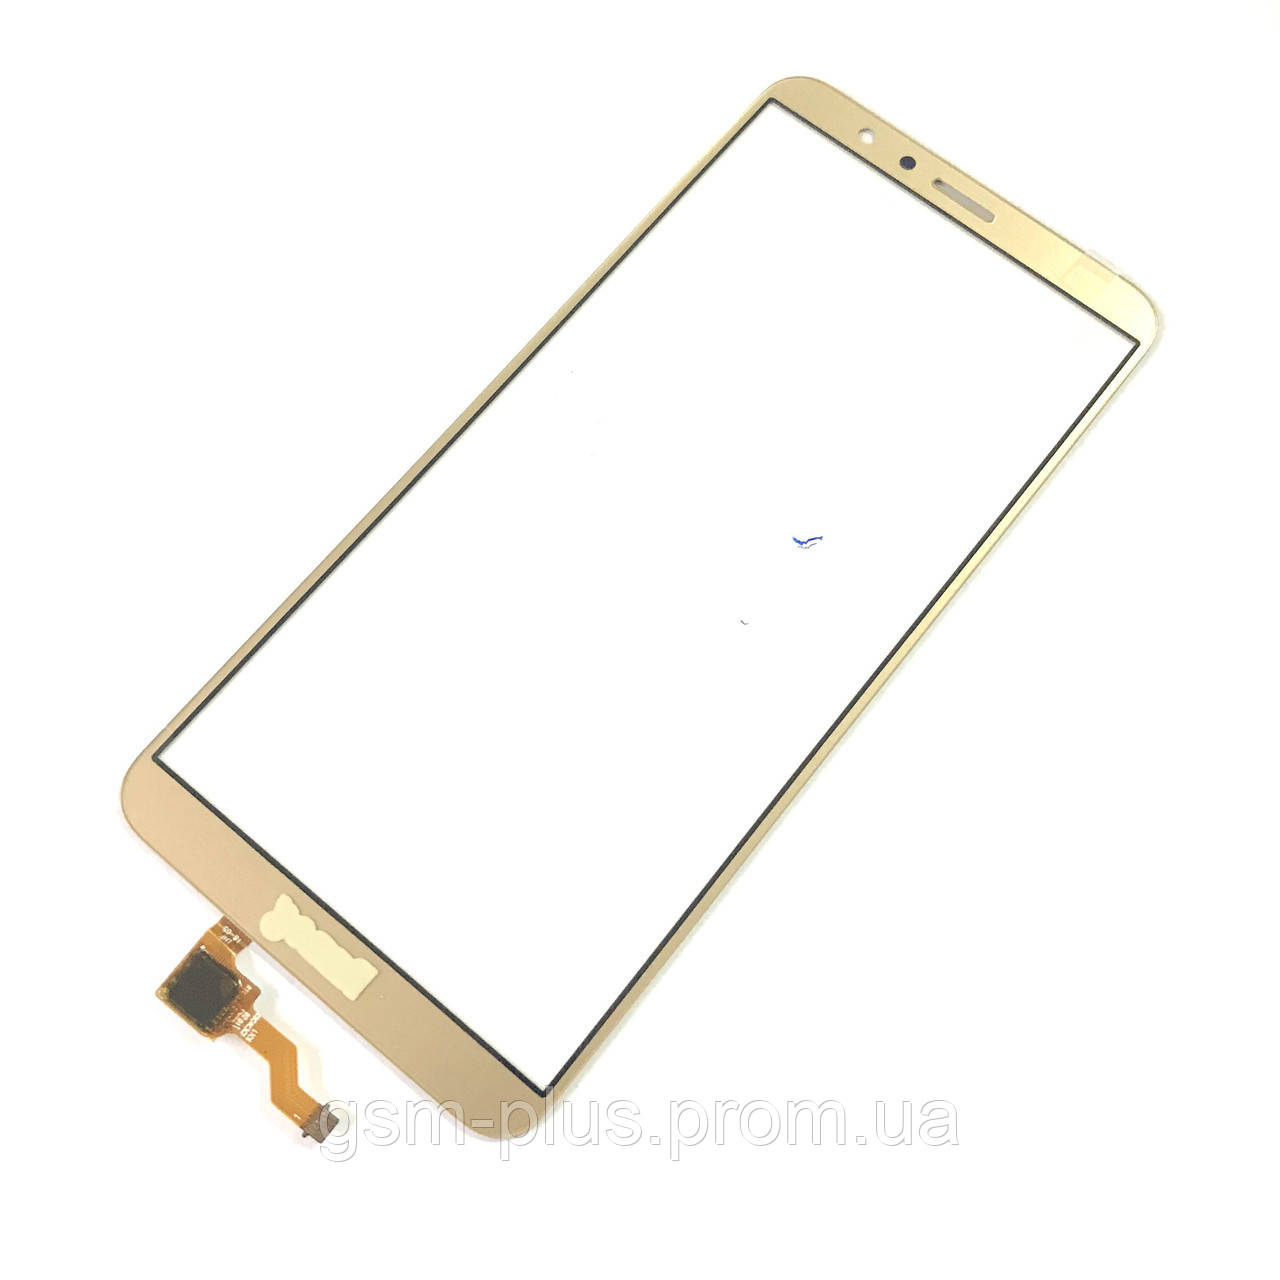 Тачскрин Huawei Honor 7x (BND-L21C10) Gold